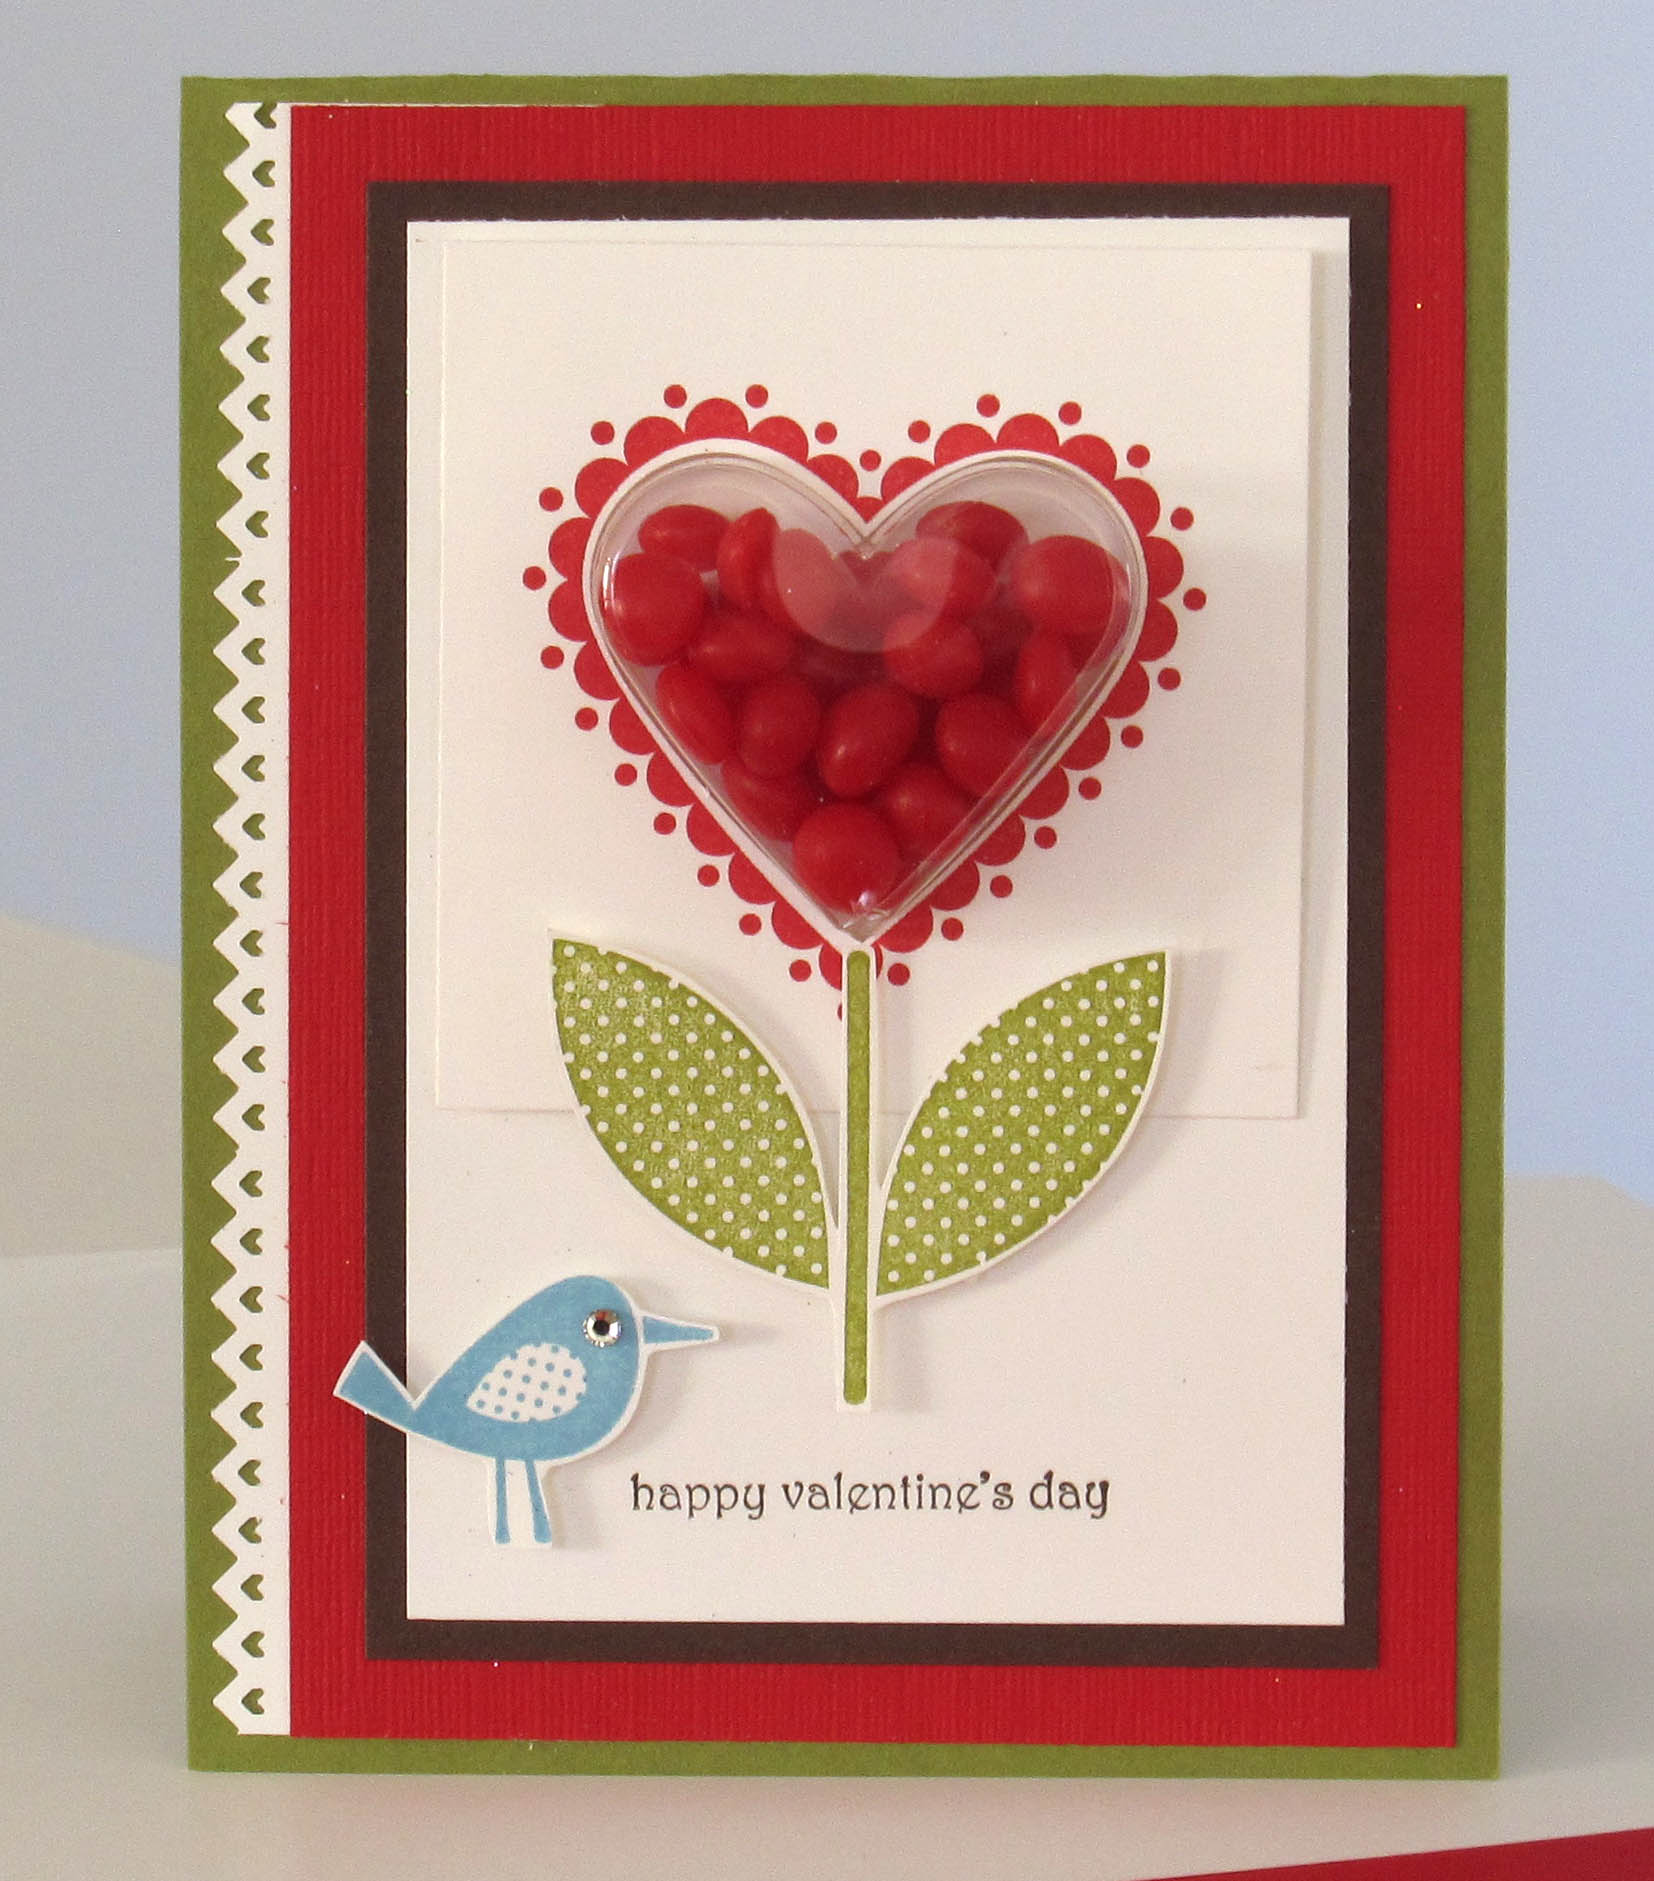 stampin up - heart treat cup valentine u0026 39 s card